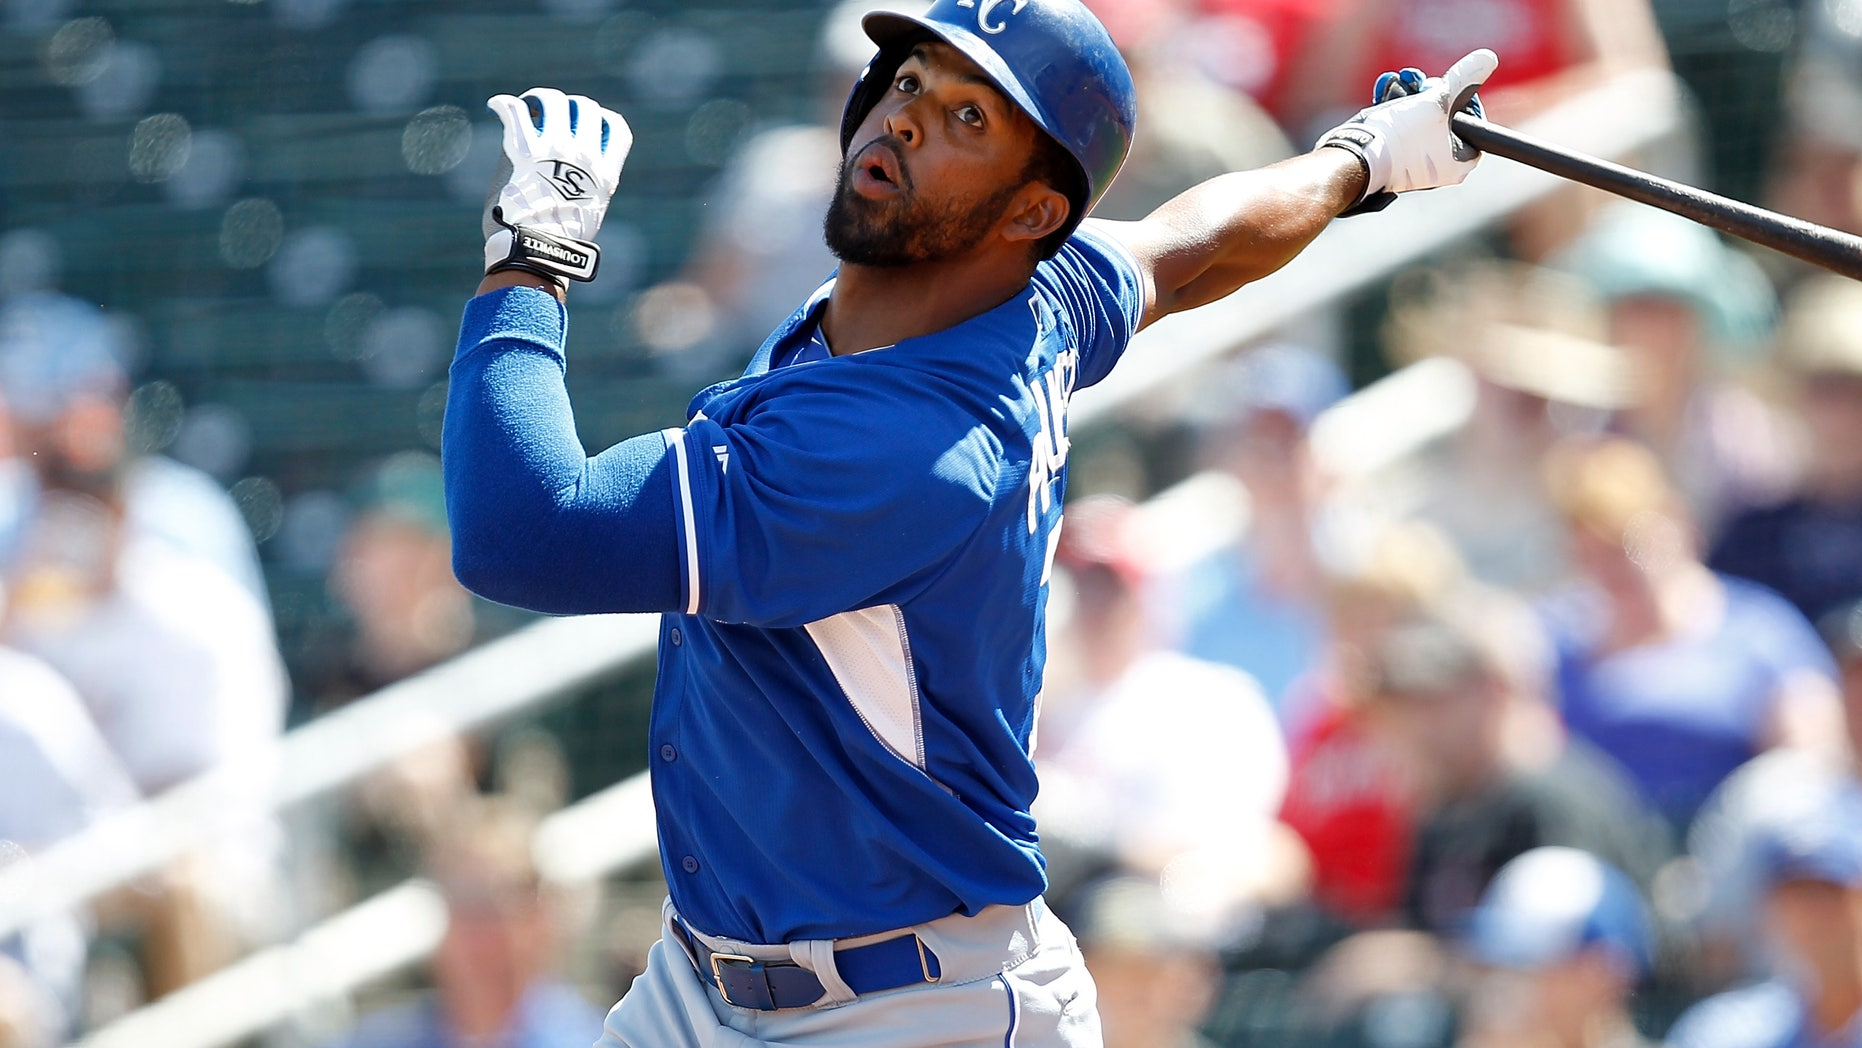 GOODYEAR, AZ - MARCH 21: Carlos Peguero #7 of the Kansas City Royals hits during a game against the Cincinnati Reds at Goodyear Ballpark on March 21, 2014 in Goodyear, Arizona. The Cincinnati Reds defeated the Kansas City Royals 9-3. (Photo by Sarah Glenn/Getty Images)